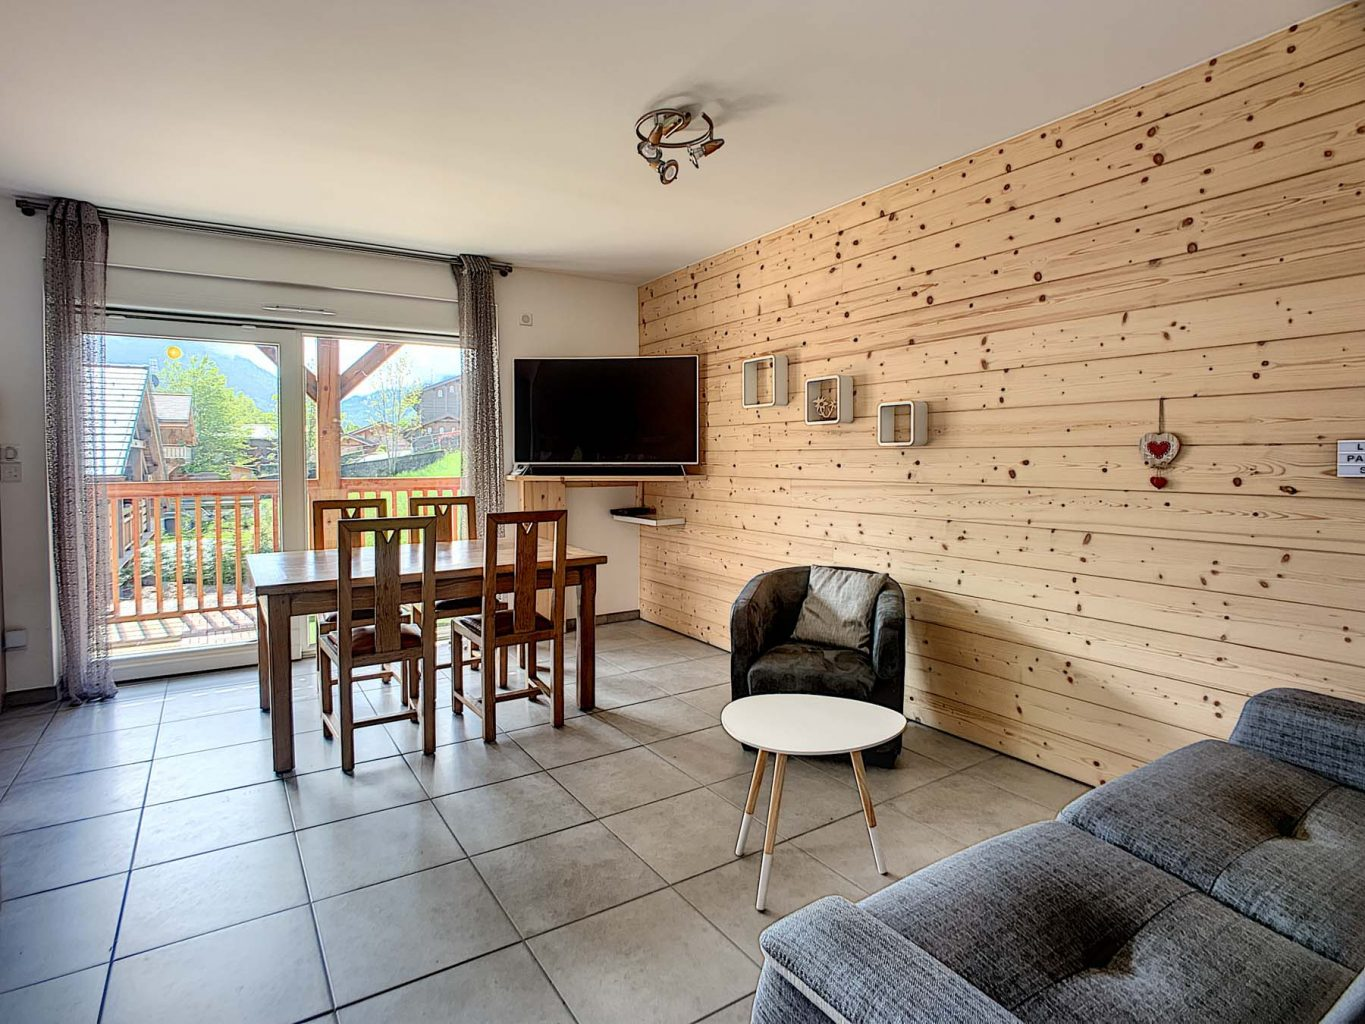 Morzine PDLP Appt 1050 Living Area